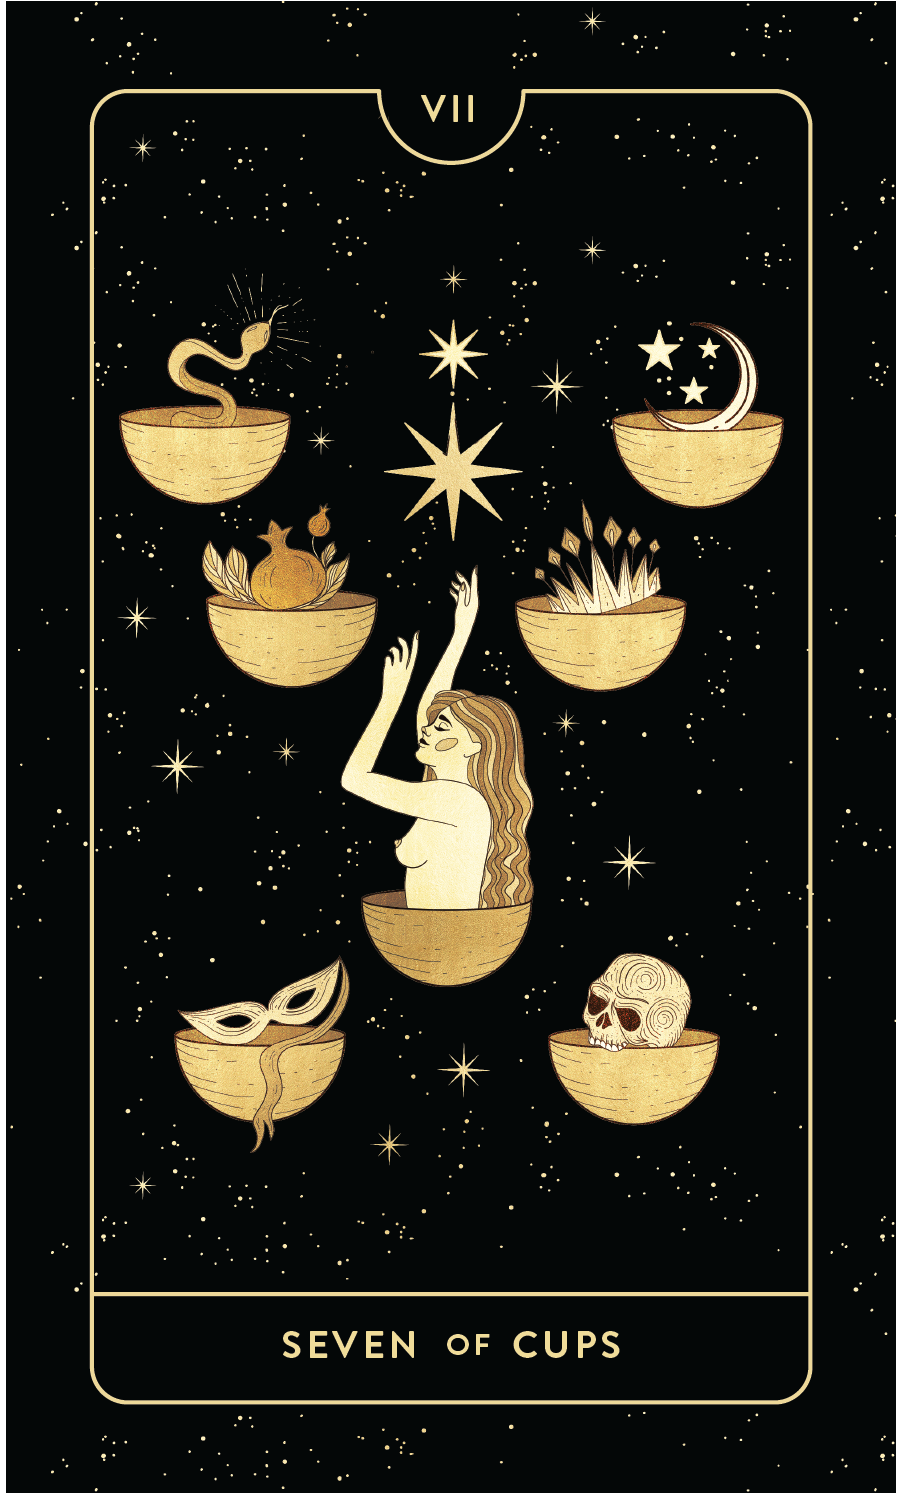 Divine Feminine Tarot Deck Seven of Cups by Cocorrina